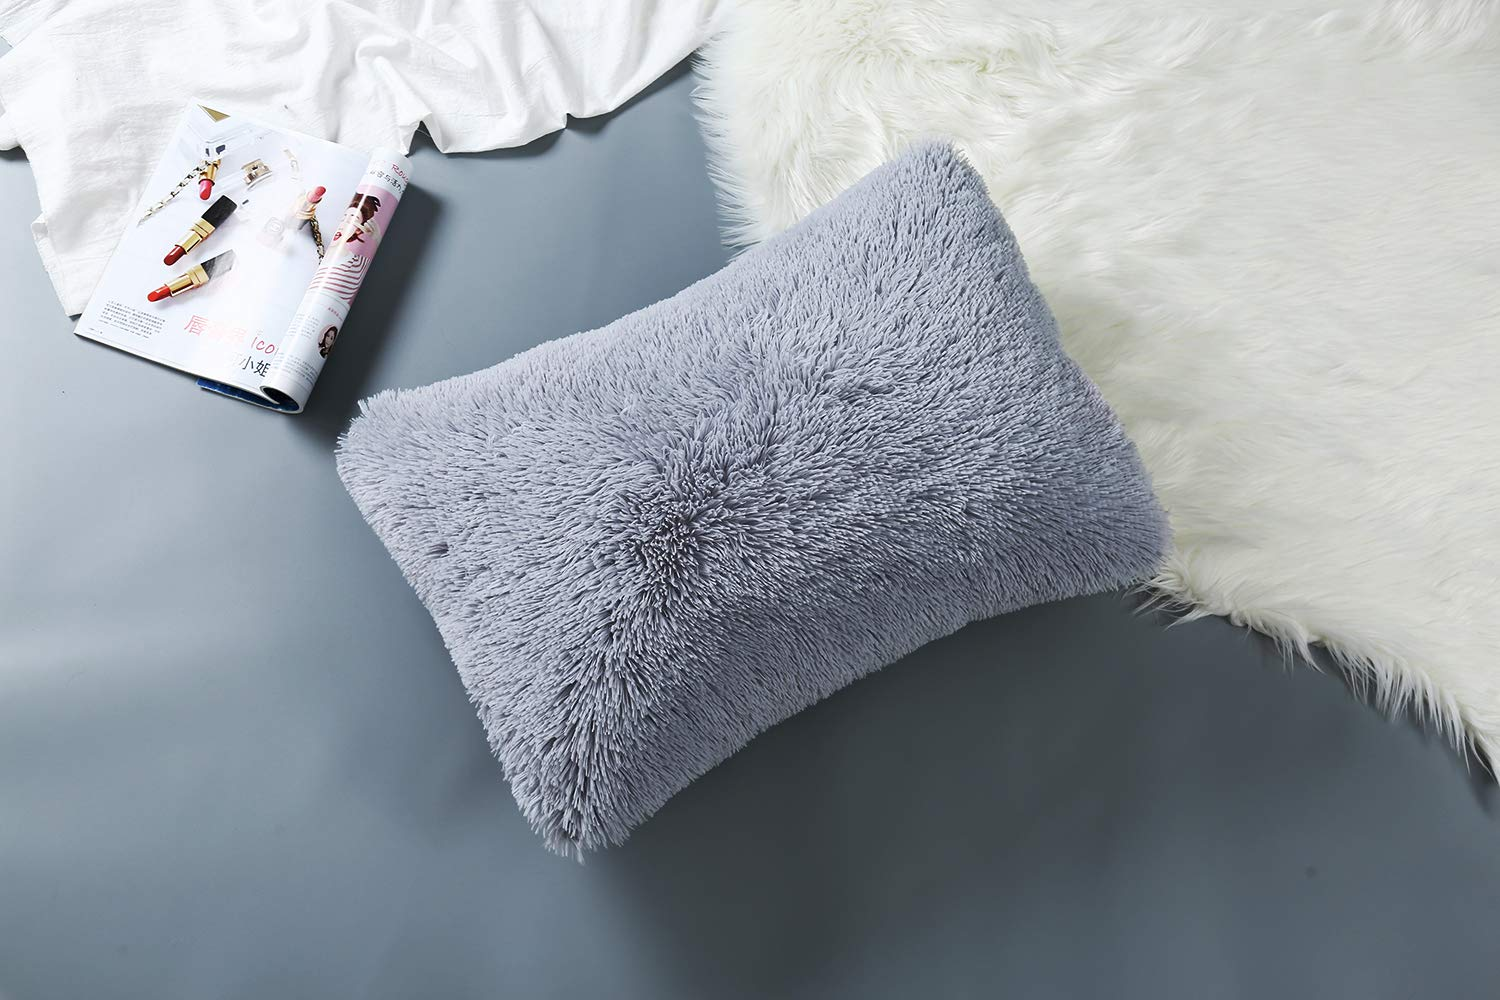 Light Gray Size 17x26, Solid Color SHUNHAO 100/% Cotton Fluff Pillowcase for Hair and Skin Breathable Hypoallergenic Odor-Free Washable Soft and Comfortable 1pc